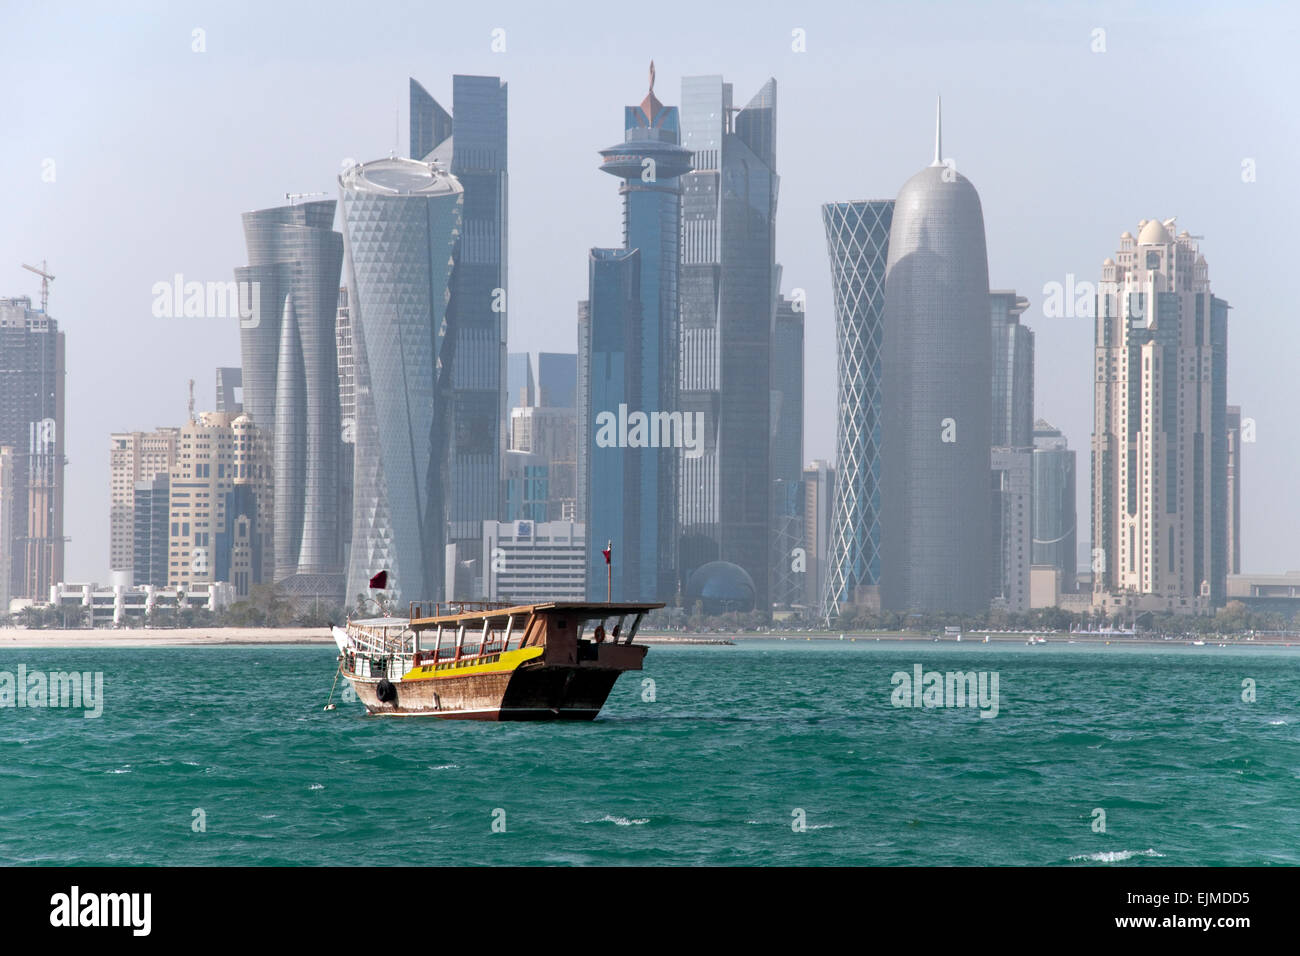 A dhow boat plows the waters of the Arabian Gulf near the skyline of Doha, the capital of Gulf nation of Qatar. Stock Photo